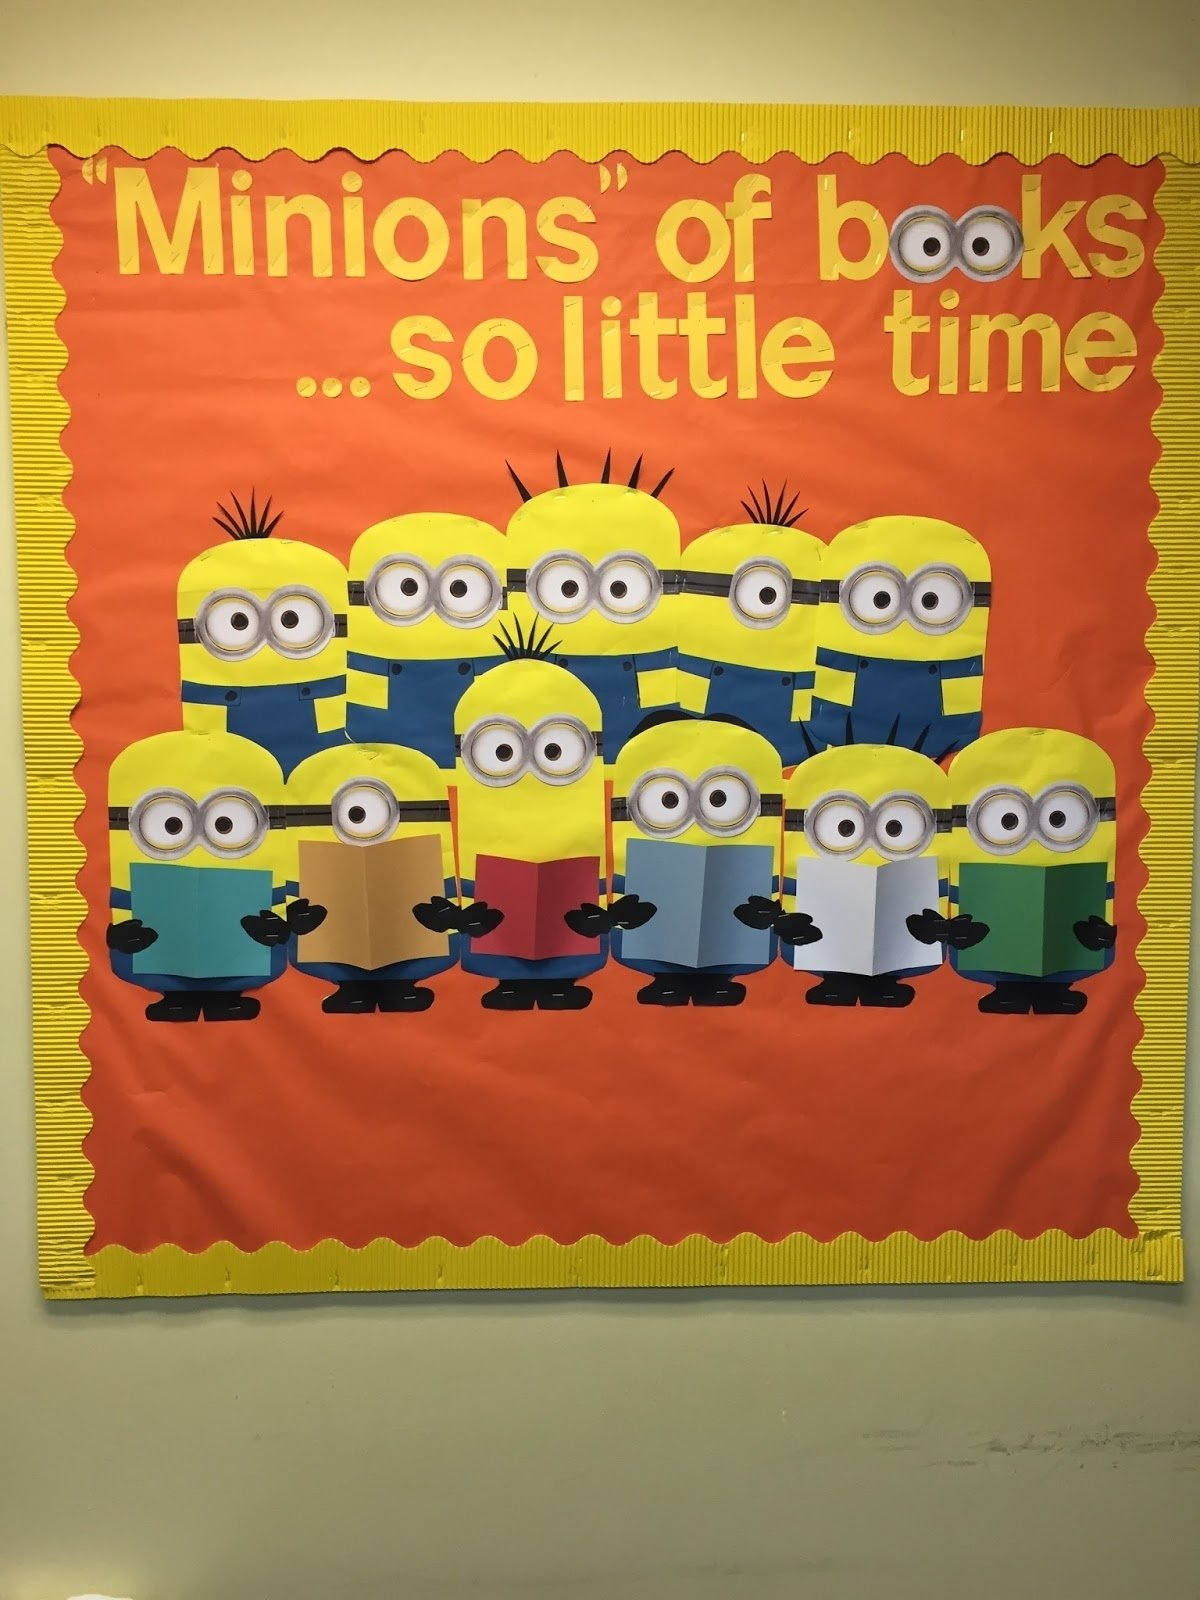 10 Stunning Welcome Back To School Bulletin Board Ideas lorris school library blog fun fall library school bulletin 1